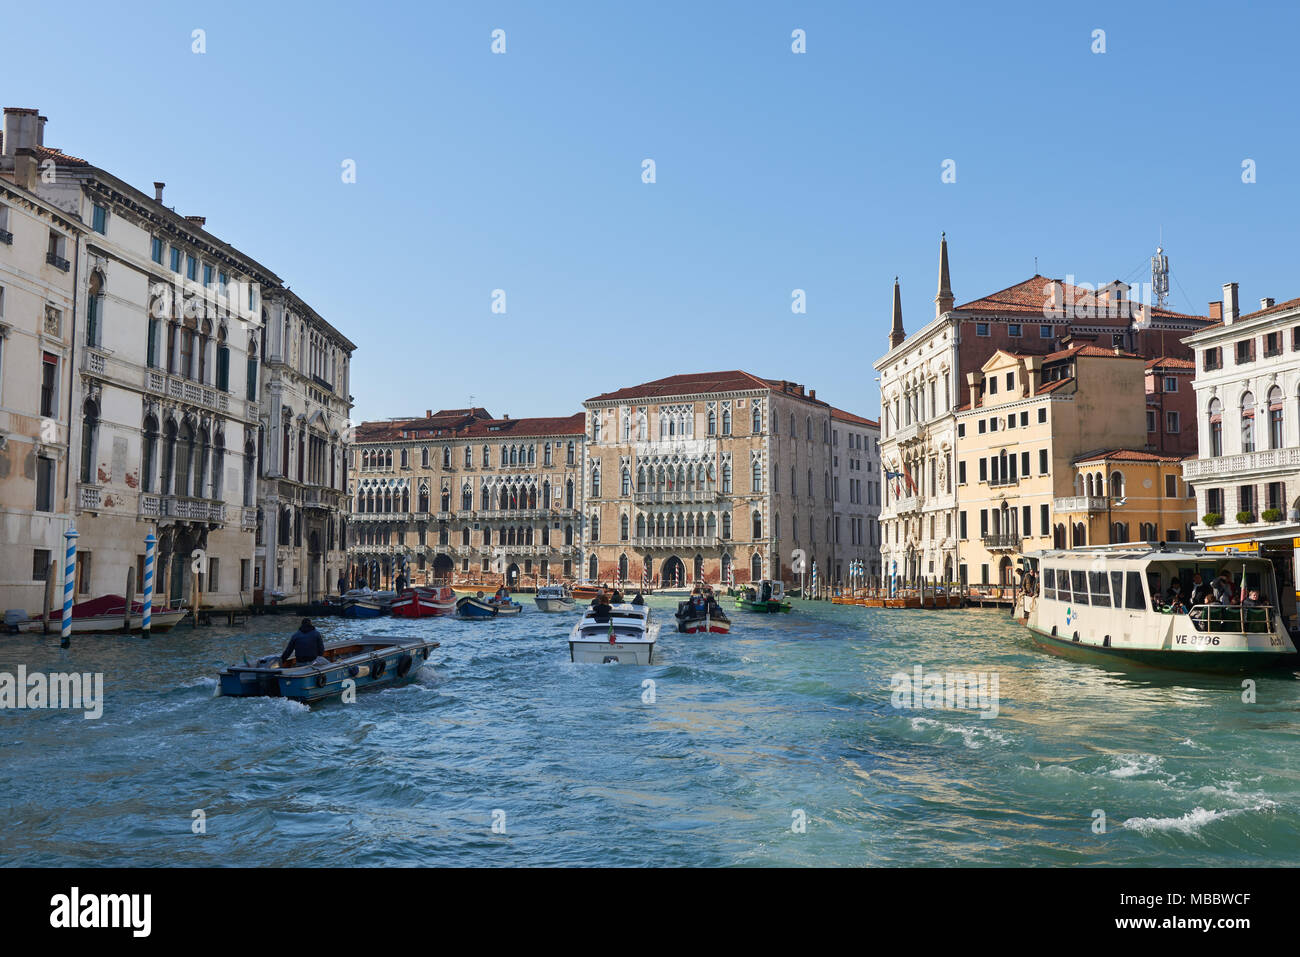 Venice, Italy - Febuary 19, 2016: Venice, a city in northeastern italy. It is famous for the beauty of its settings, archtecture and artwork. A part o - Stock Image